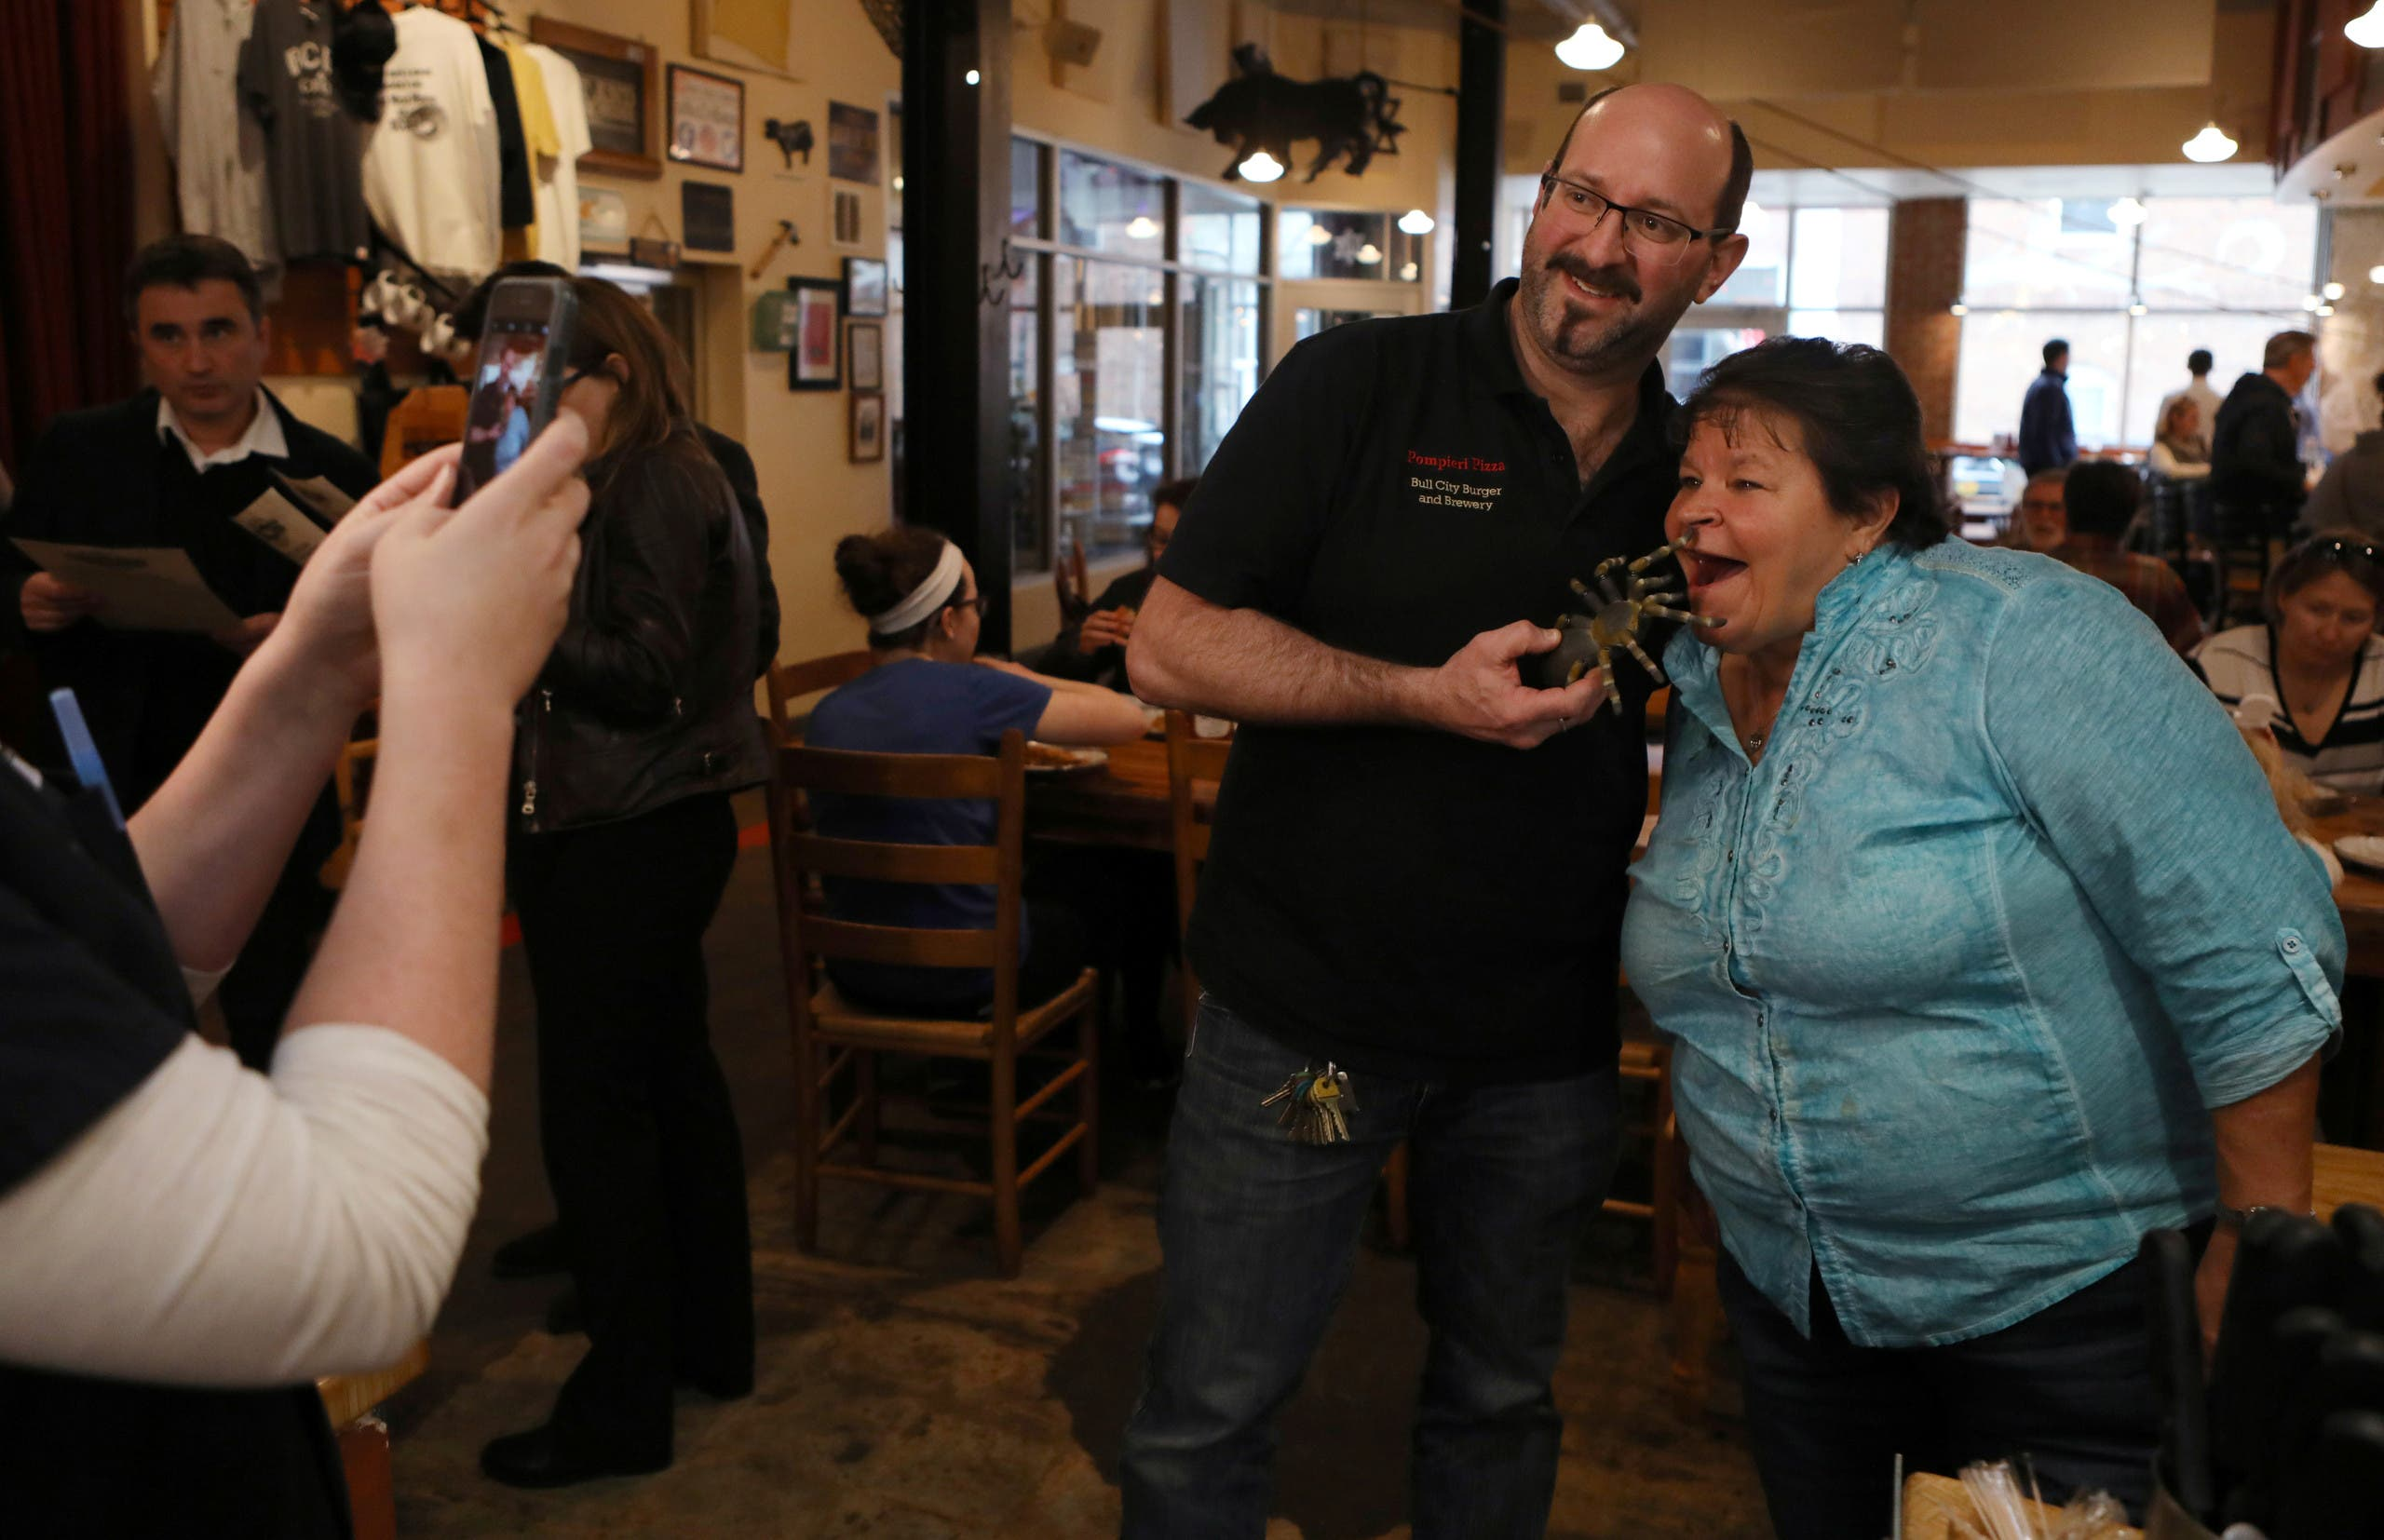 Bull City Burger and Brewery owner Seth Gross posses with a customer as he holds a tarantula toy before the restaurant serves their tarantula burger to another customer in celebration of Exotic Meat Month in Durham, North Carolina, U.S. April 16, 2018. Picture taken April 16, 2018. REUTERS/Jim Urquhart